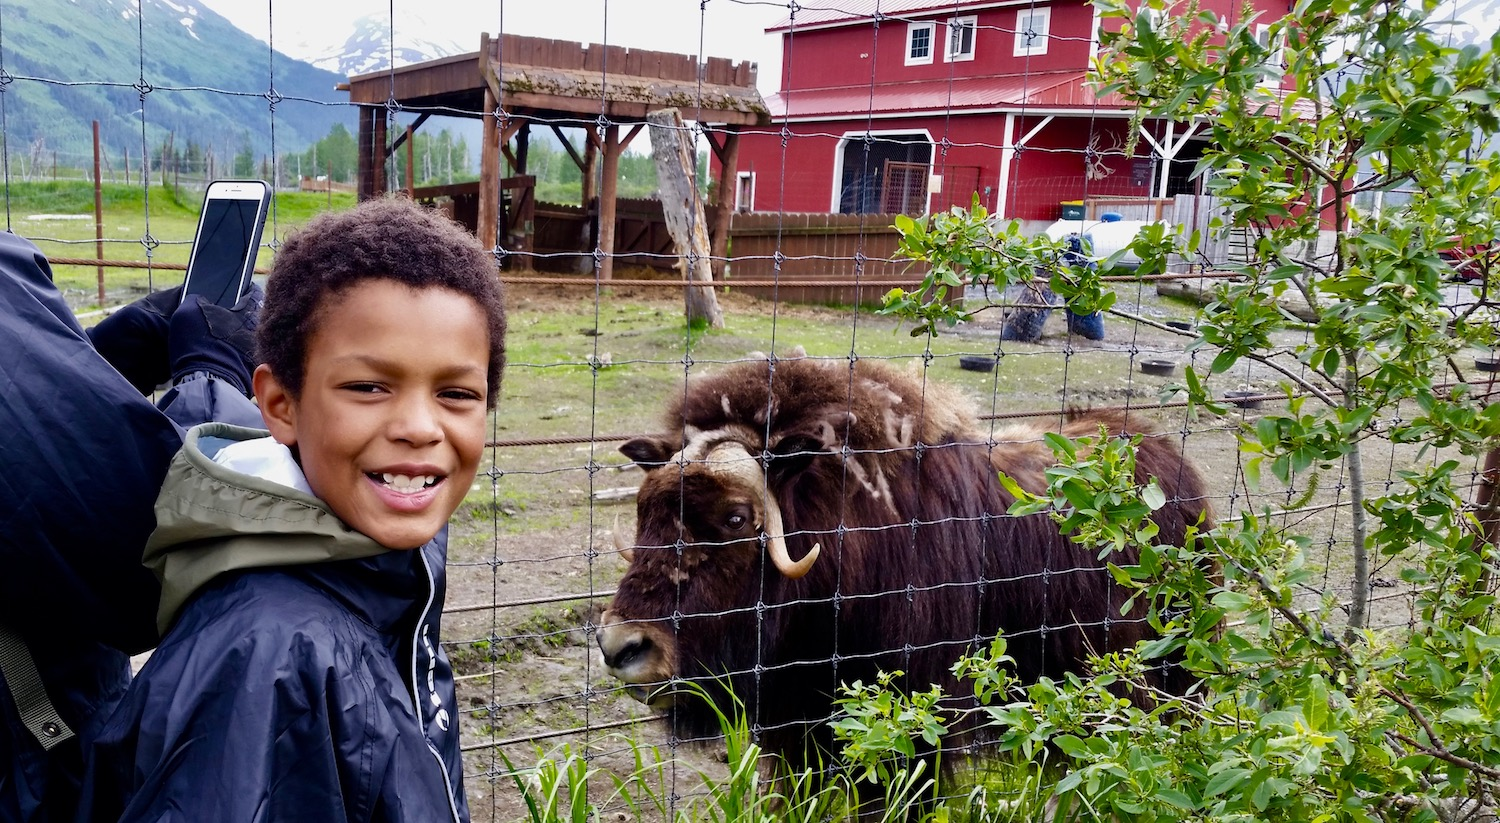 Young boy next to muskox at Alaska Wildlife Conversation Center